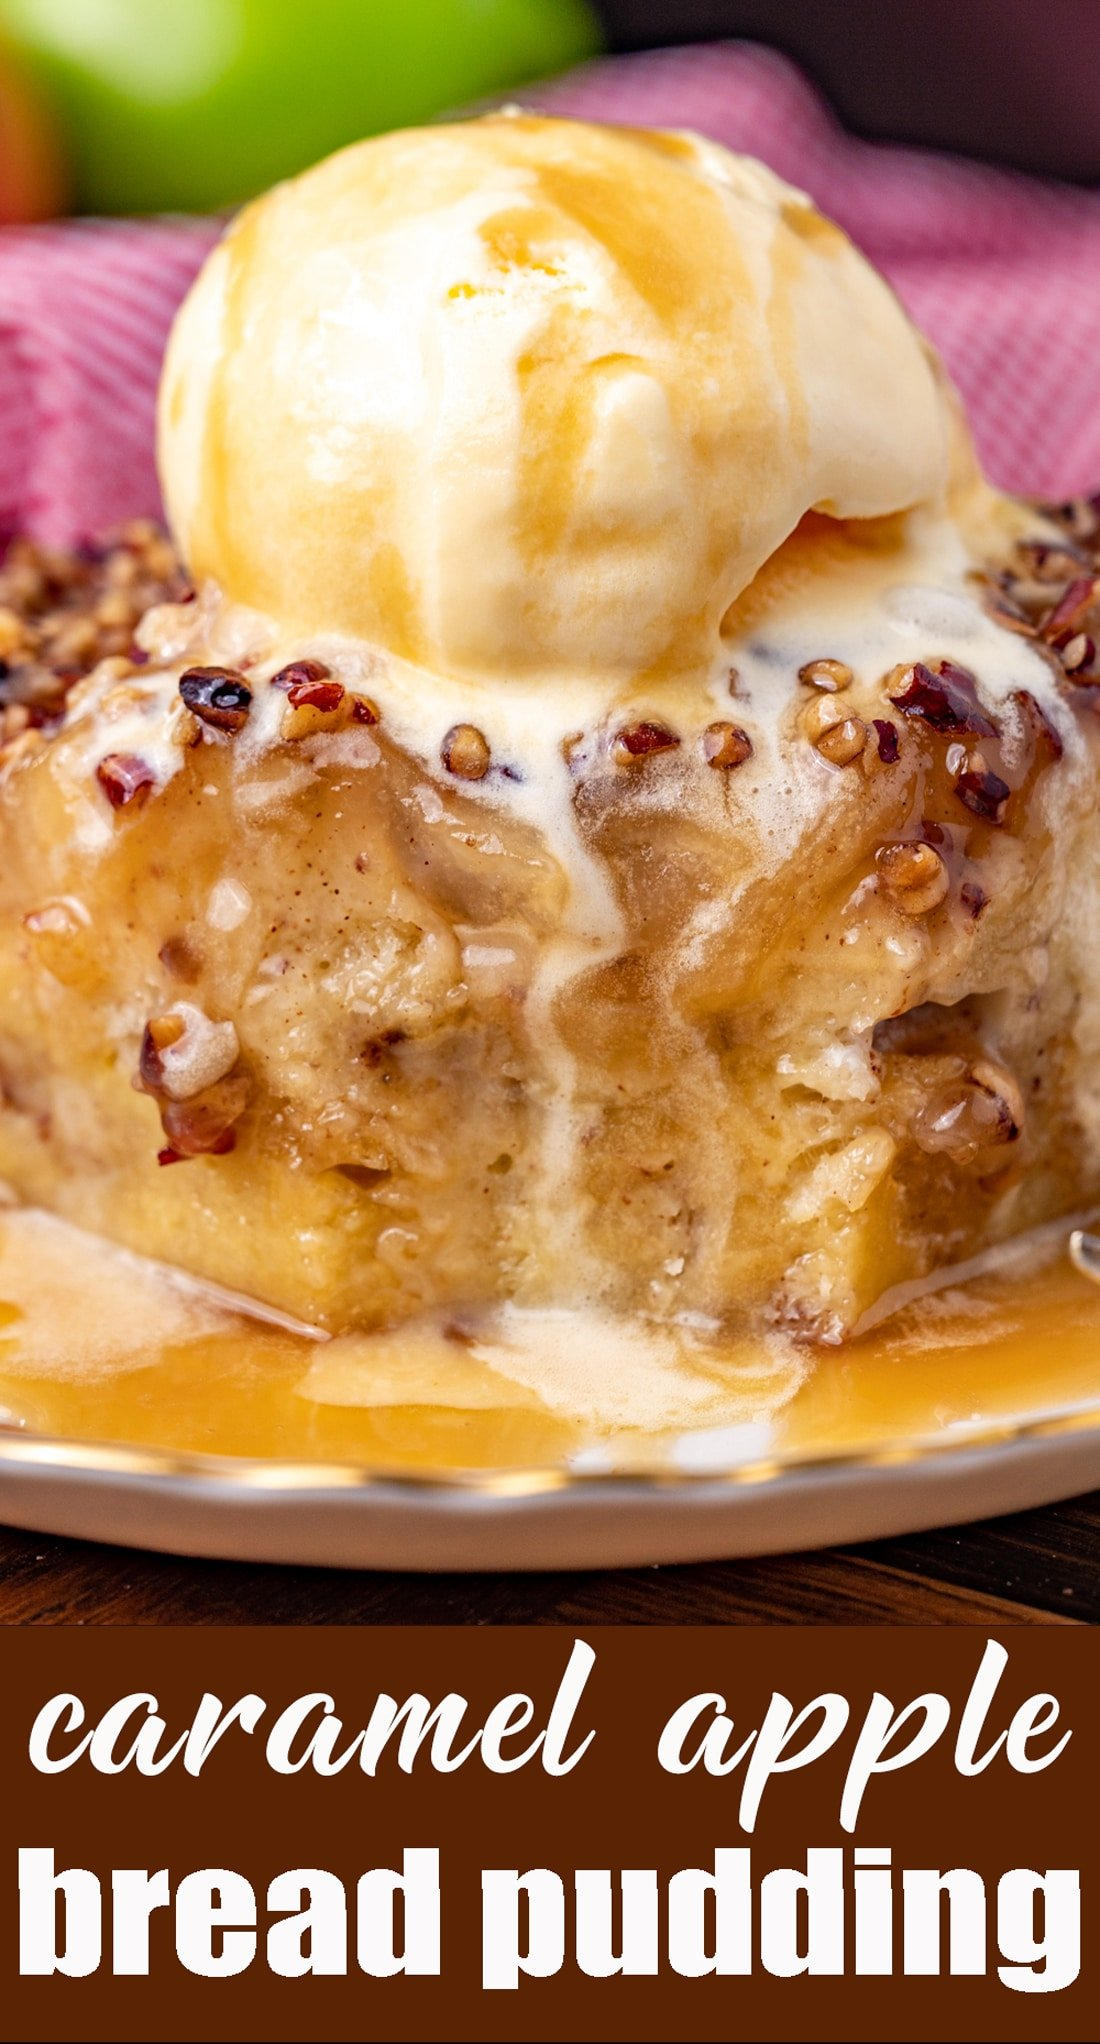 Caramel apple bread pudding is the perfect treat for breakfast, brunch, or dessert. It's one of the best apple recipes you can make for with festive fall flavors! via @tastesoflizzyt